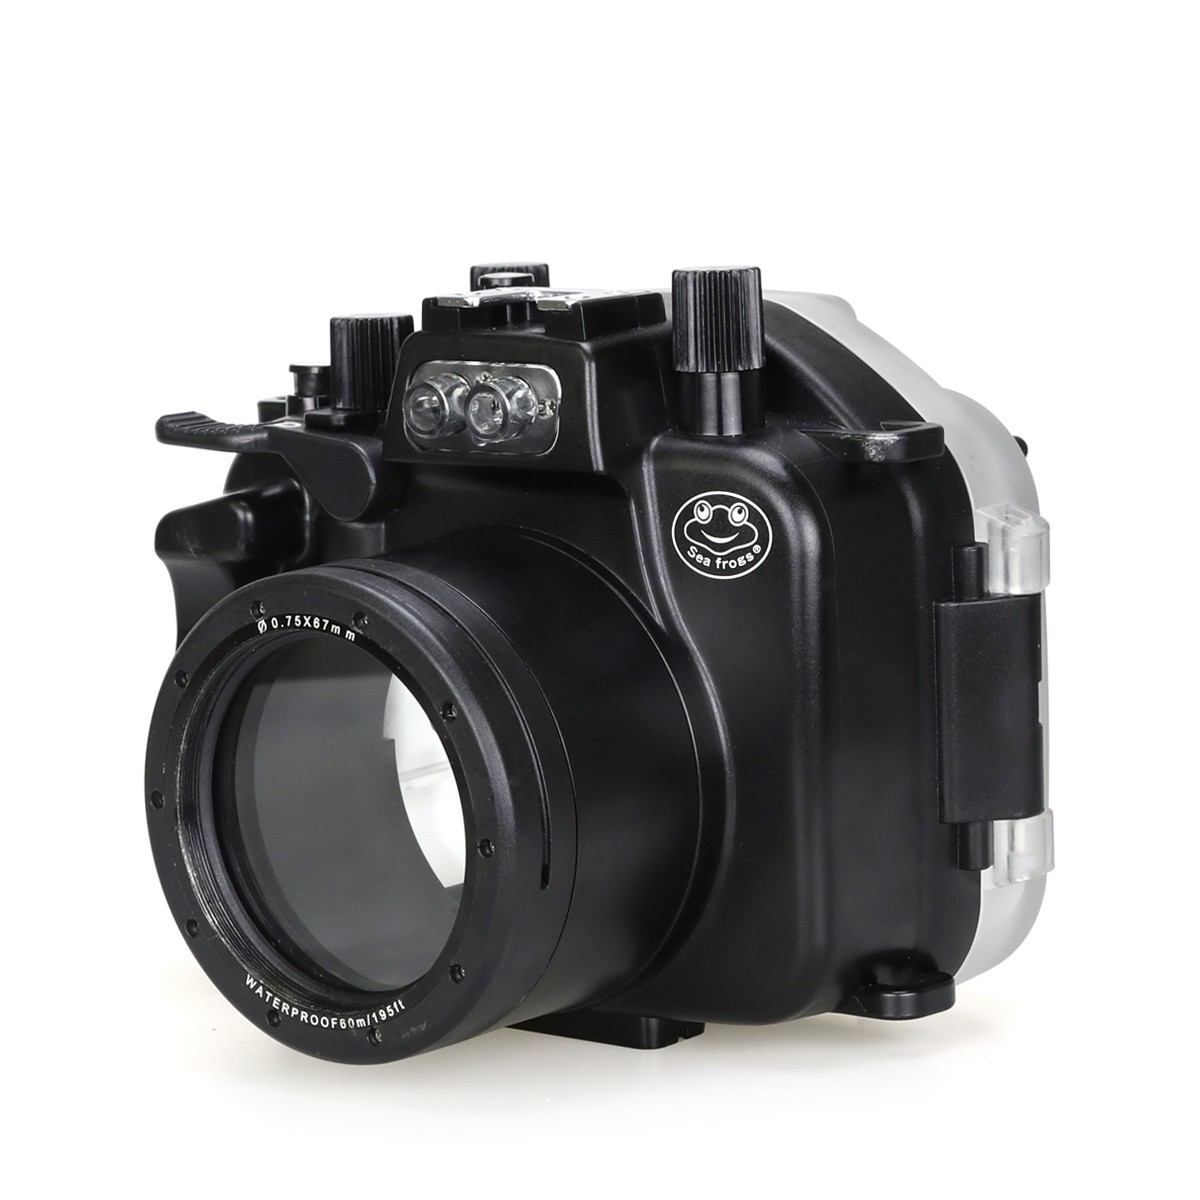 Meikon 40m/130ft Underwater Camera Housing For Canon EOS M5 (18-55mm) Waterproof Camera Bags Case For Canon EOS M5 (18-55mm) mcoplus 40m 130ft waterproof underwater housing camera case bag for canon eos g16